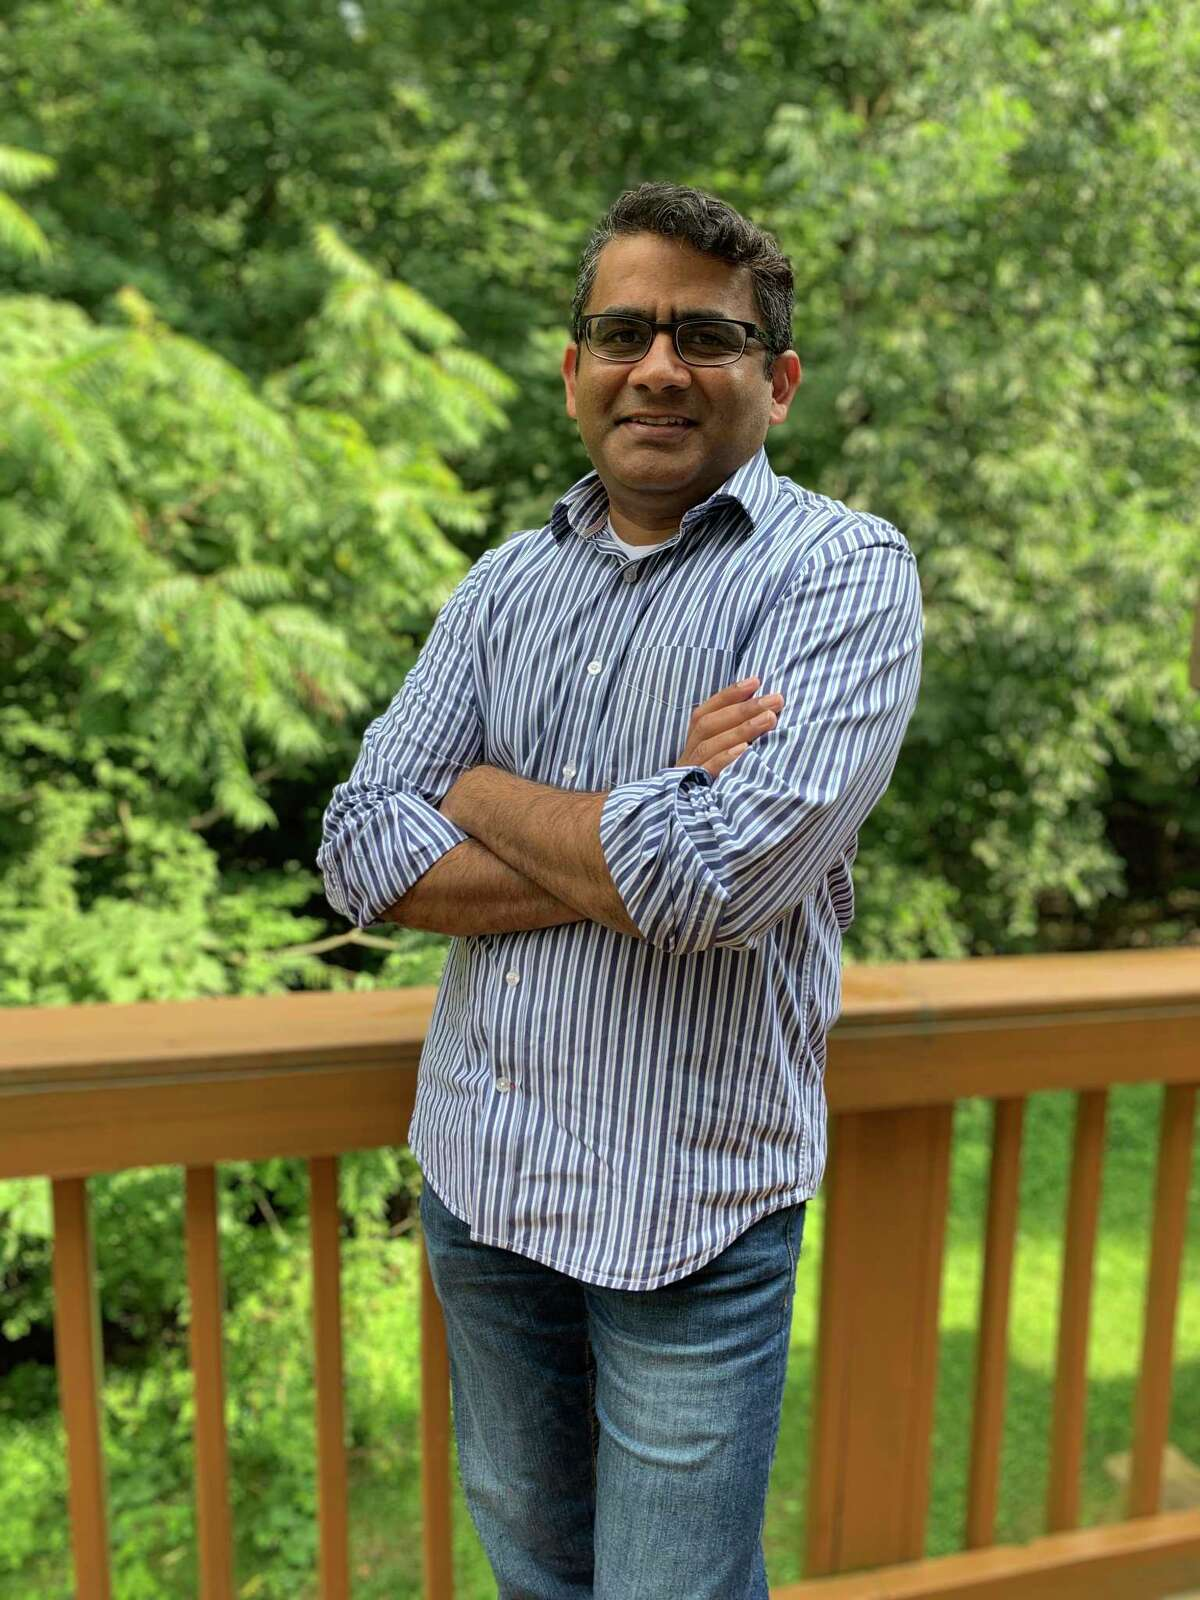 Ram Gajavelli, a software engineer from the Philadelphia area, saw specialists in India who helped discover what was causing his unexplained pain.